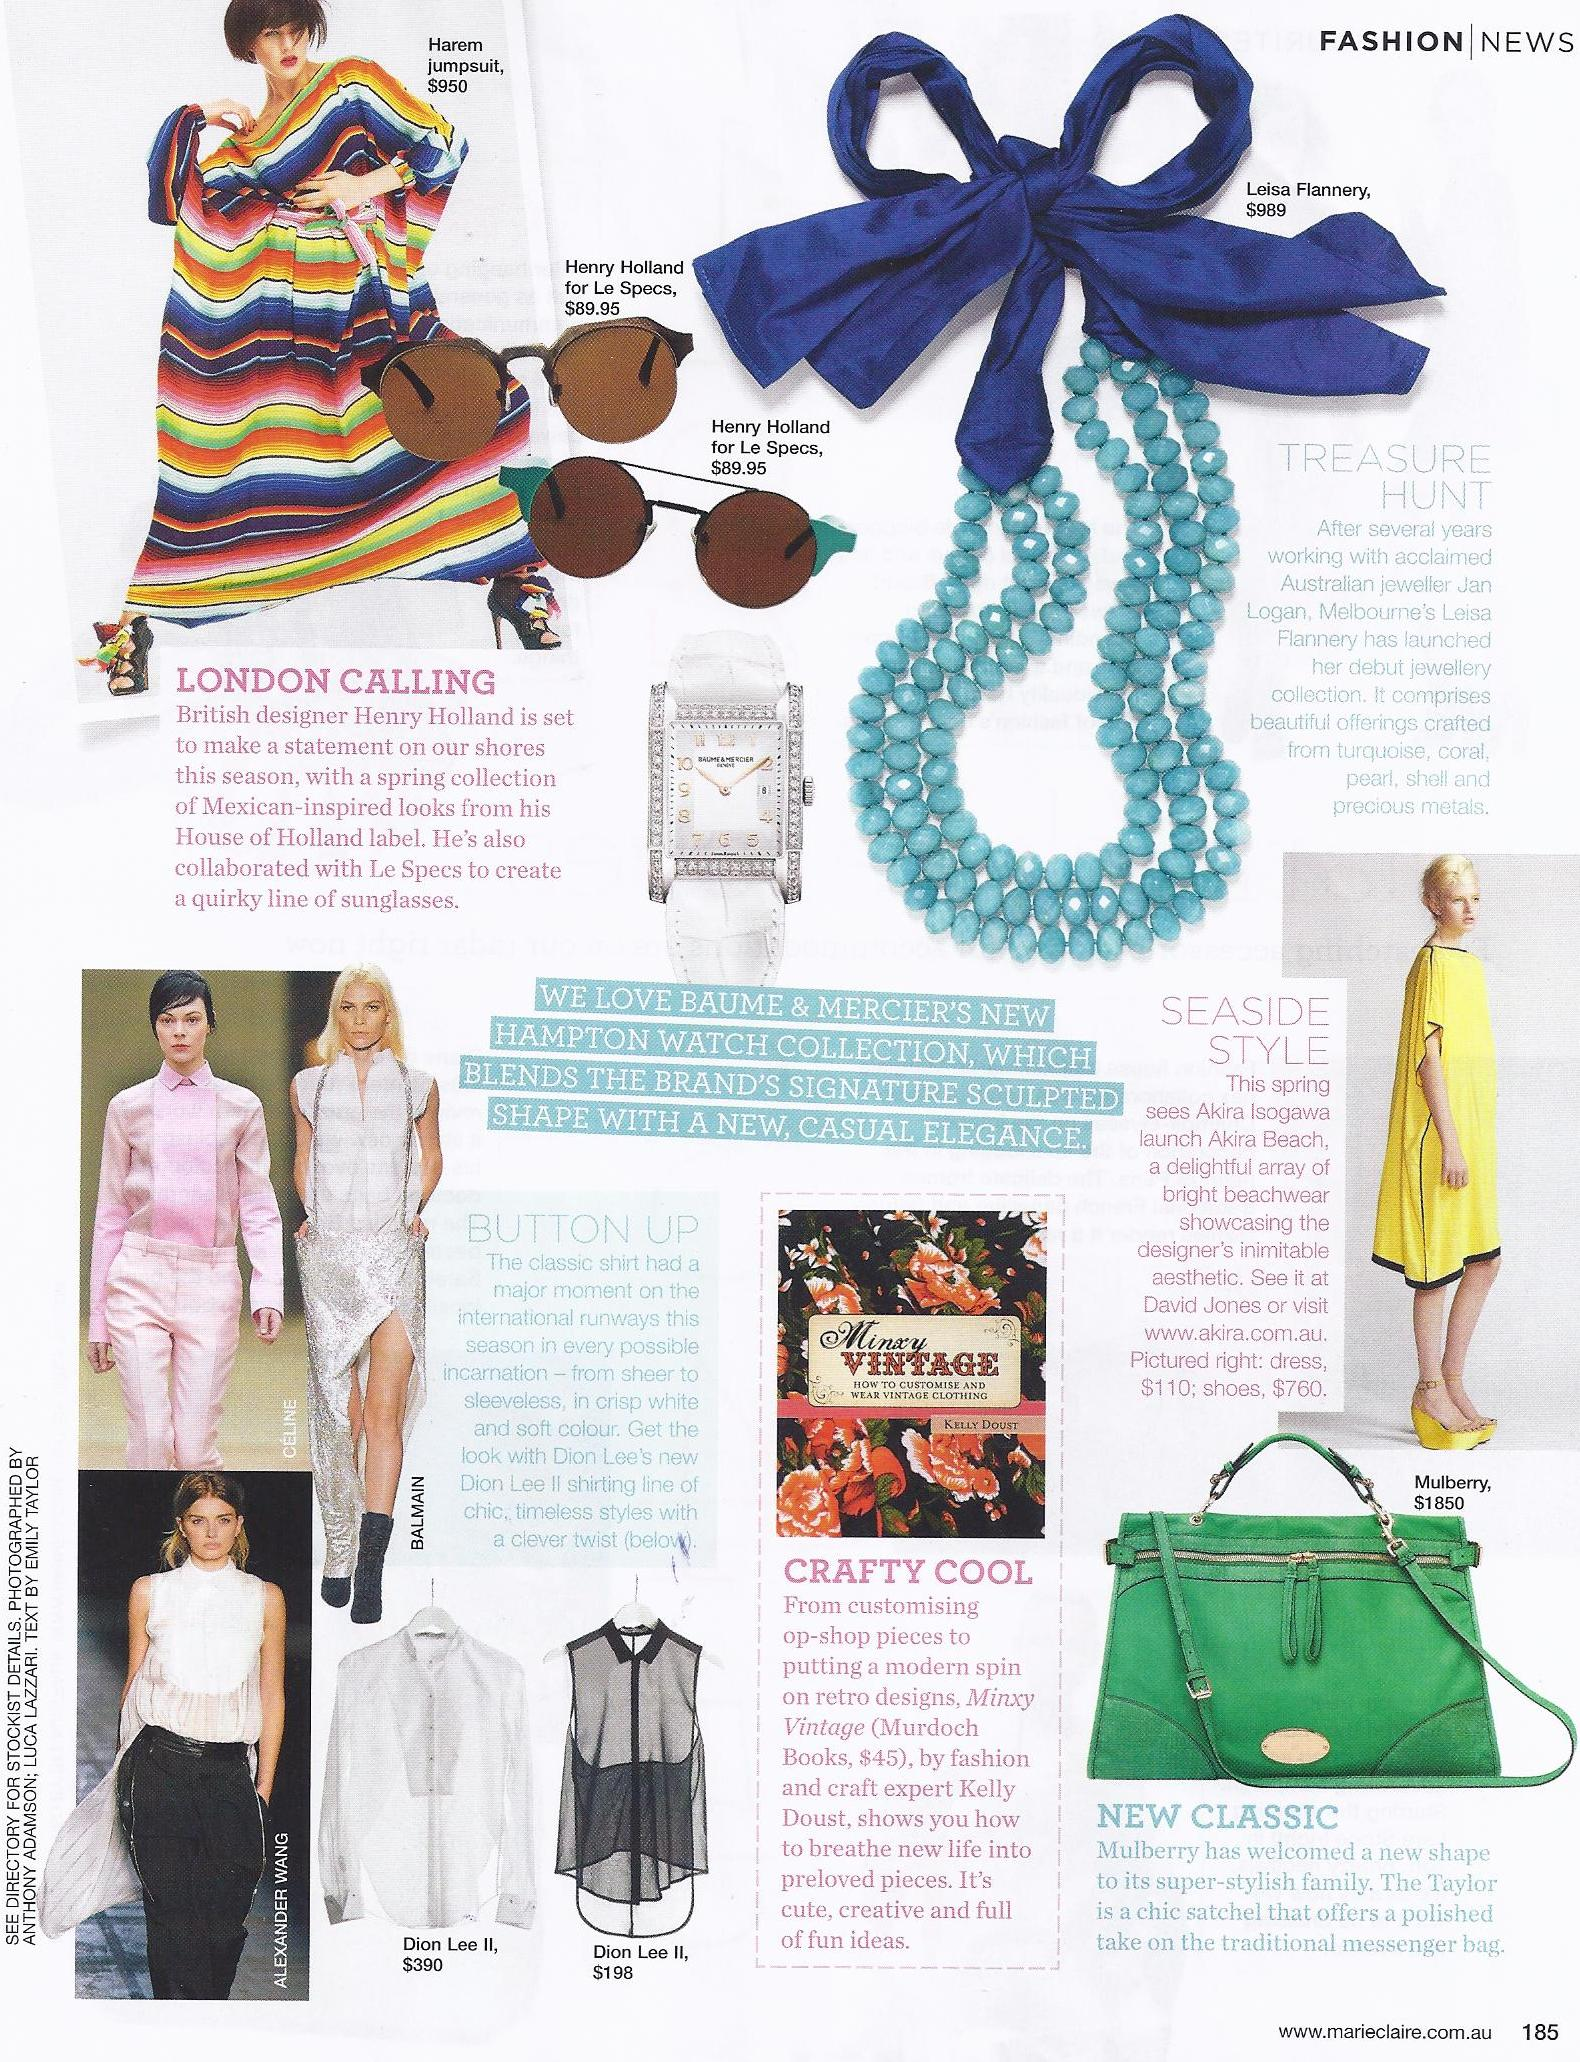 Marie Claire featuring the Silk Tie necklace.jpg